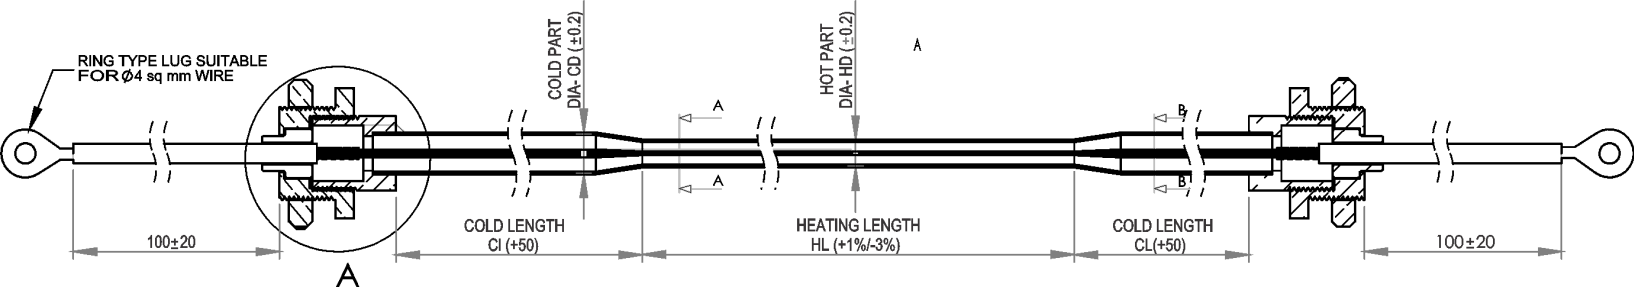 Expanded Cold Region type MI Heating Cable